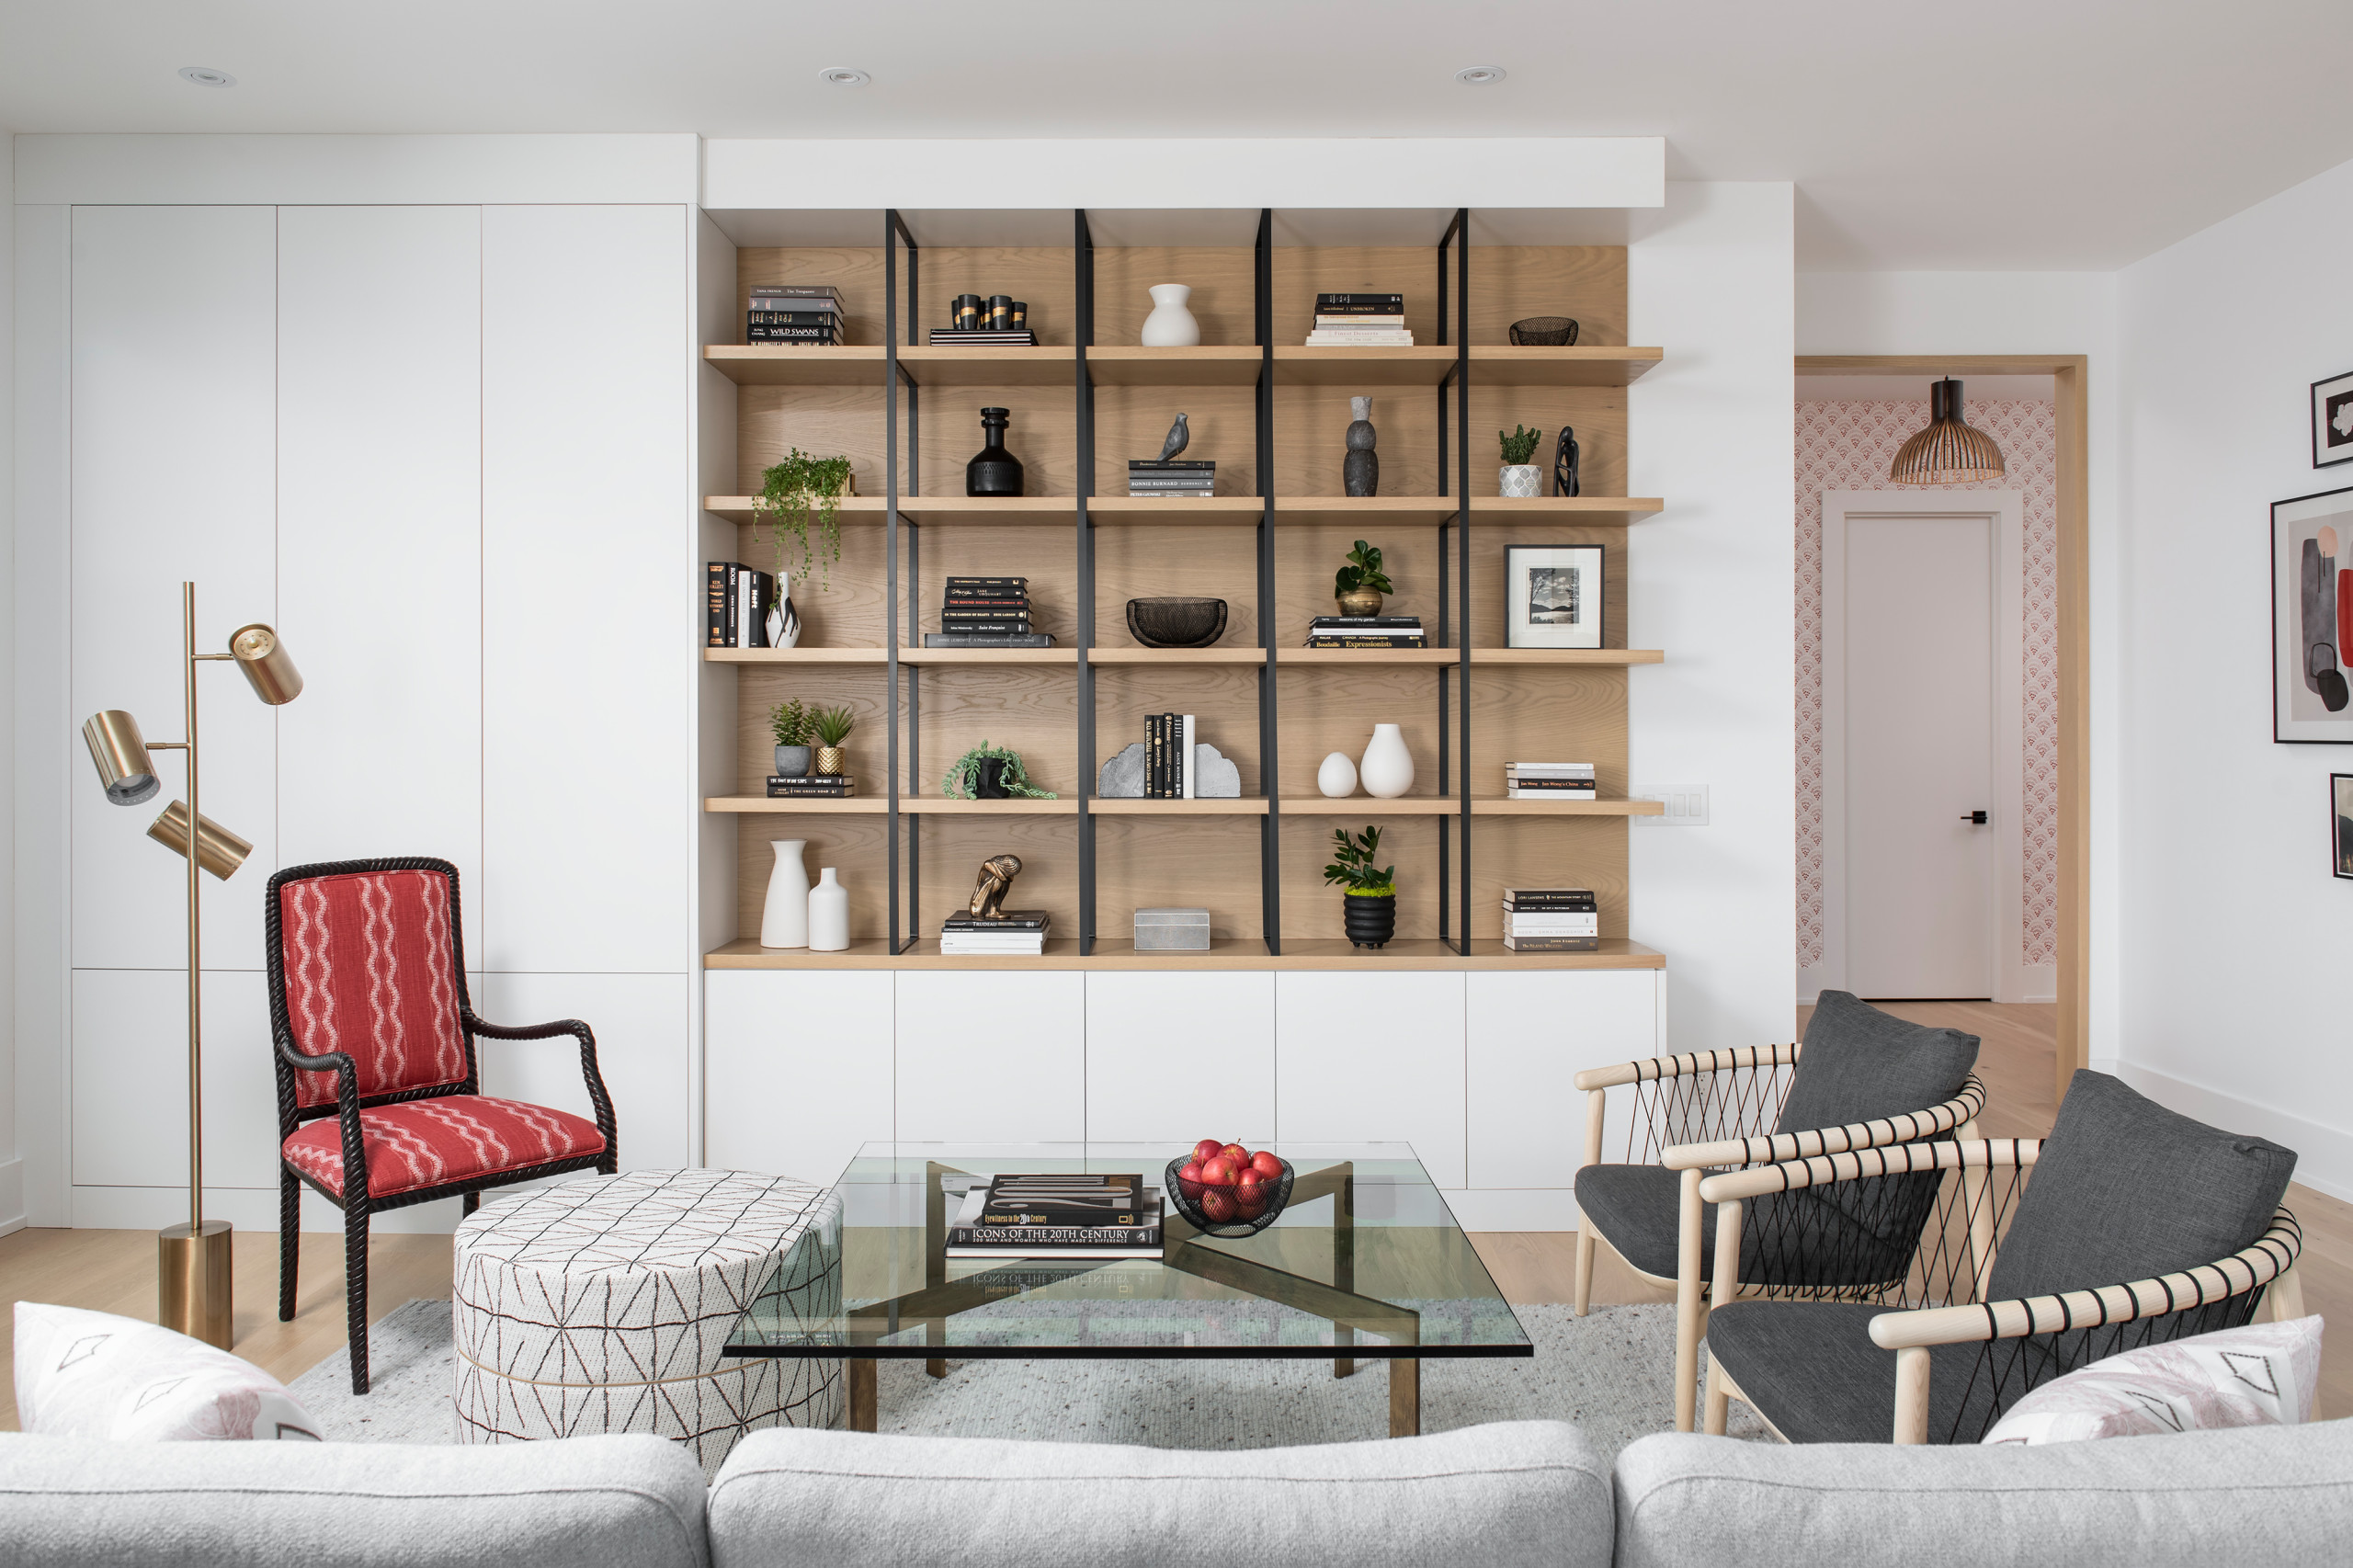 75 Beautiful Living Room With No Fireplace And No Tv Pictures Ideas December 2020 Houzz